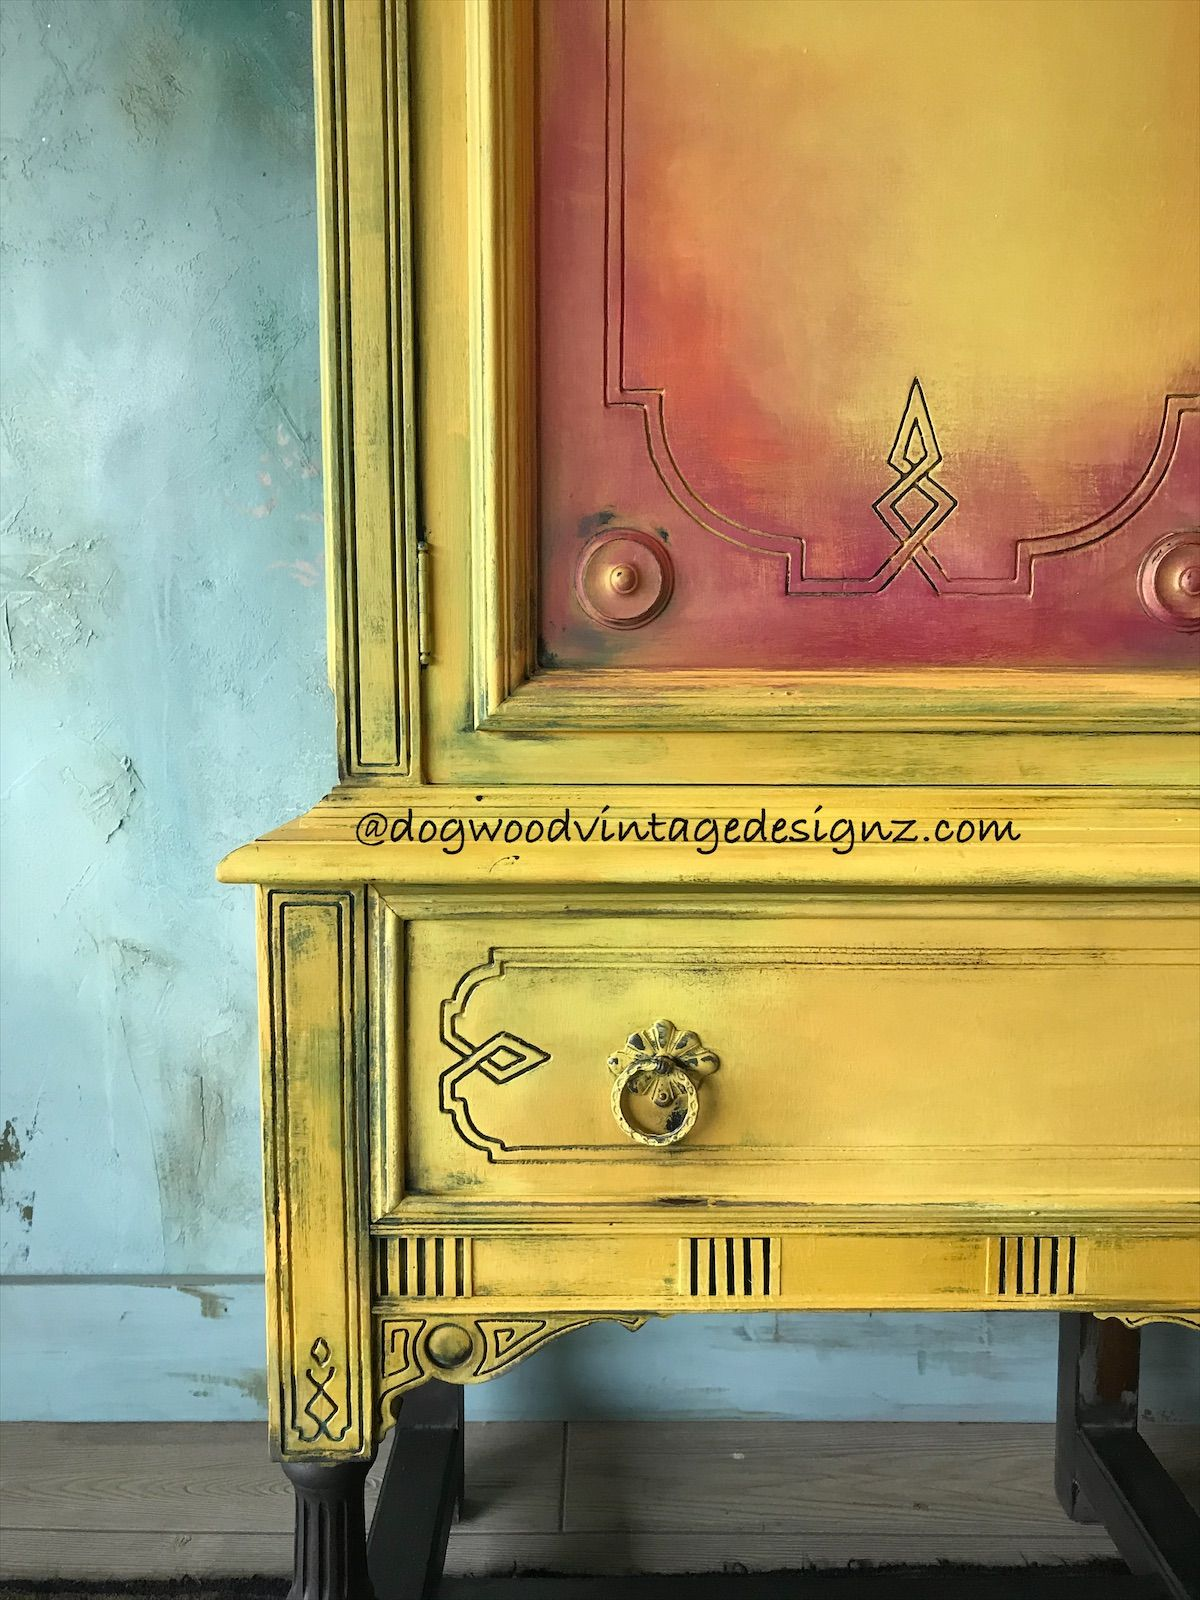 #paintedfurniture #repurposedvintage #upholstery #antiquefurniture #bohostyle #eclectichome #rusticelegance #textured #upcycle #artist #etsyshop #layeredpaint #grungy #modernfarmhouse #handpainted #retro #neutral #frenchchateau #anniesloanchalkpaint #anniesloanhome #frenchprovincial #paintedfurniture #repurposedvintage #upholstery #antiquefurniture #bohostyle #eclectichome #rusticelegance #textured #upcycle #artist #etsyshop #layeredpaint #grungy #modernfarmhouse #handpainted #retro #neutral #fr